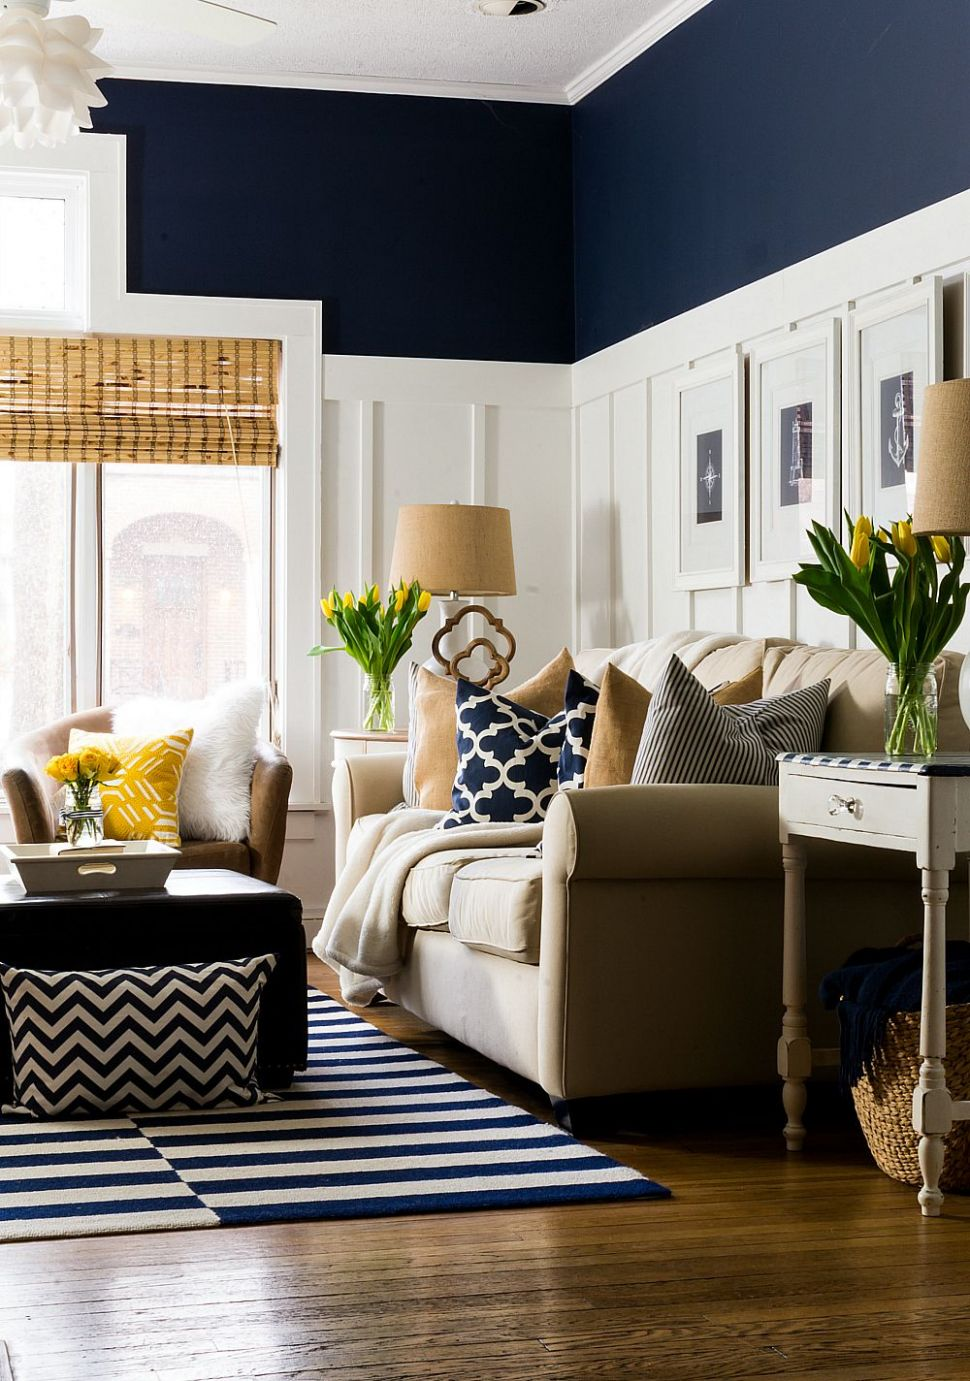 Spring Decor Ideas in Navy and Yellow | Navy living rooms, Coastal ..